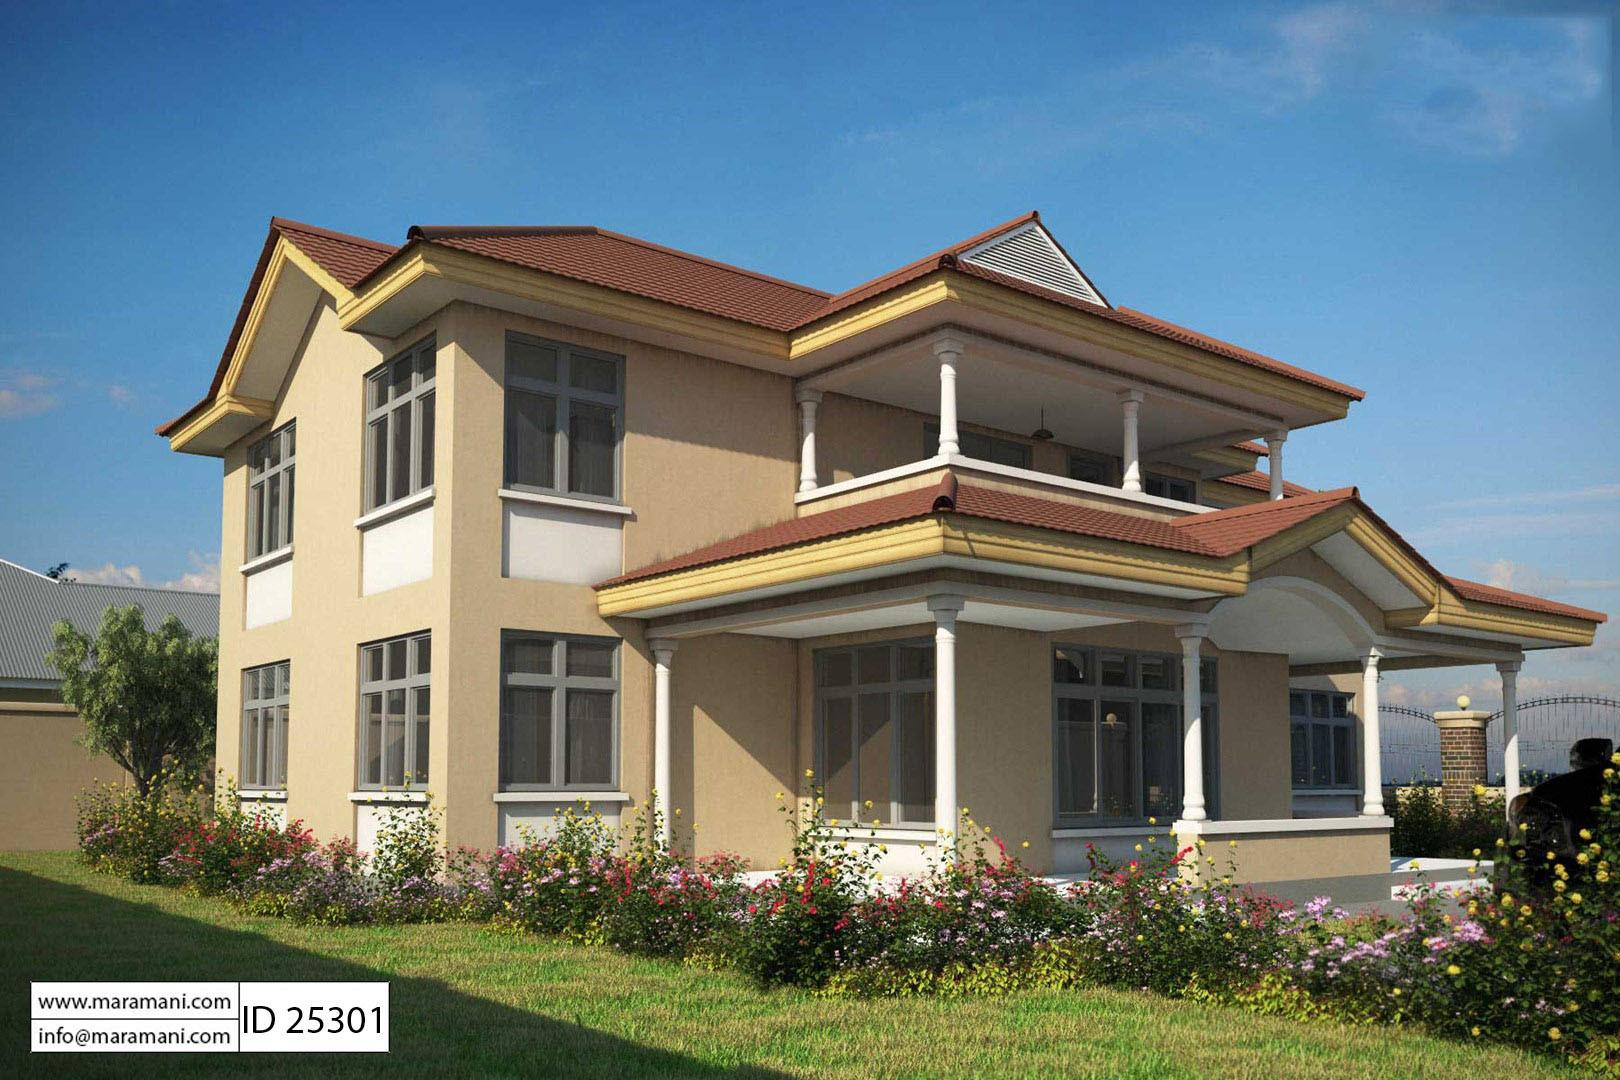 bedroom house plan 2 story id 25301 house plans by maramani 5 bedroom house plan 2 story id 25301 house plans by maramani